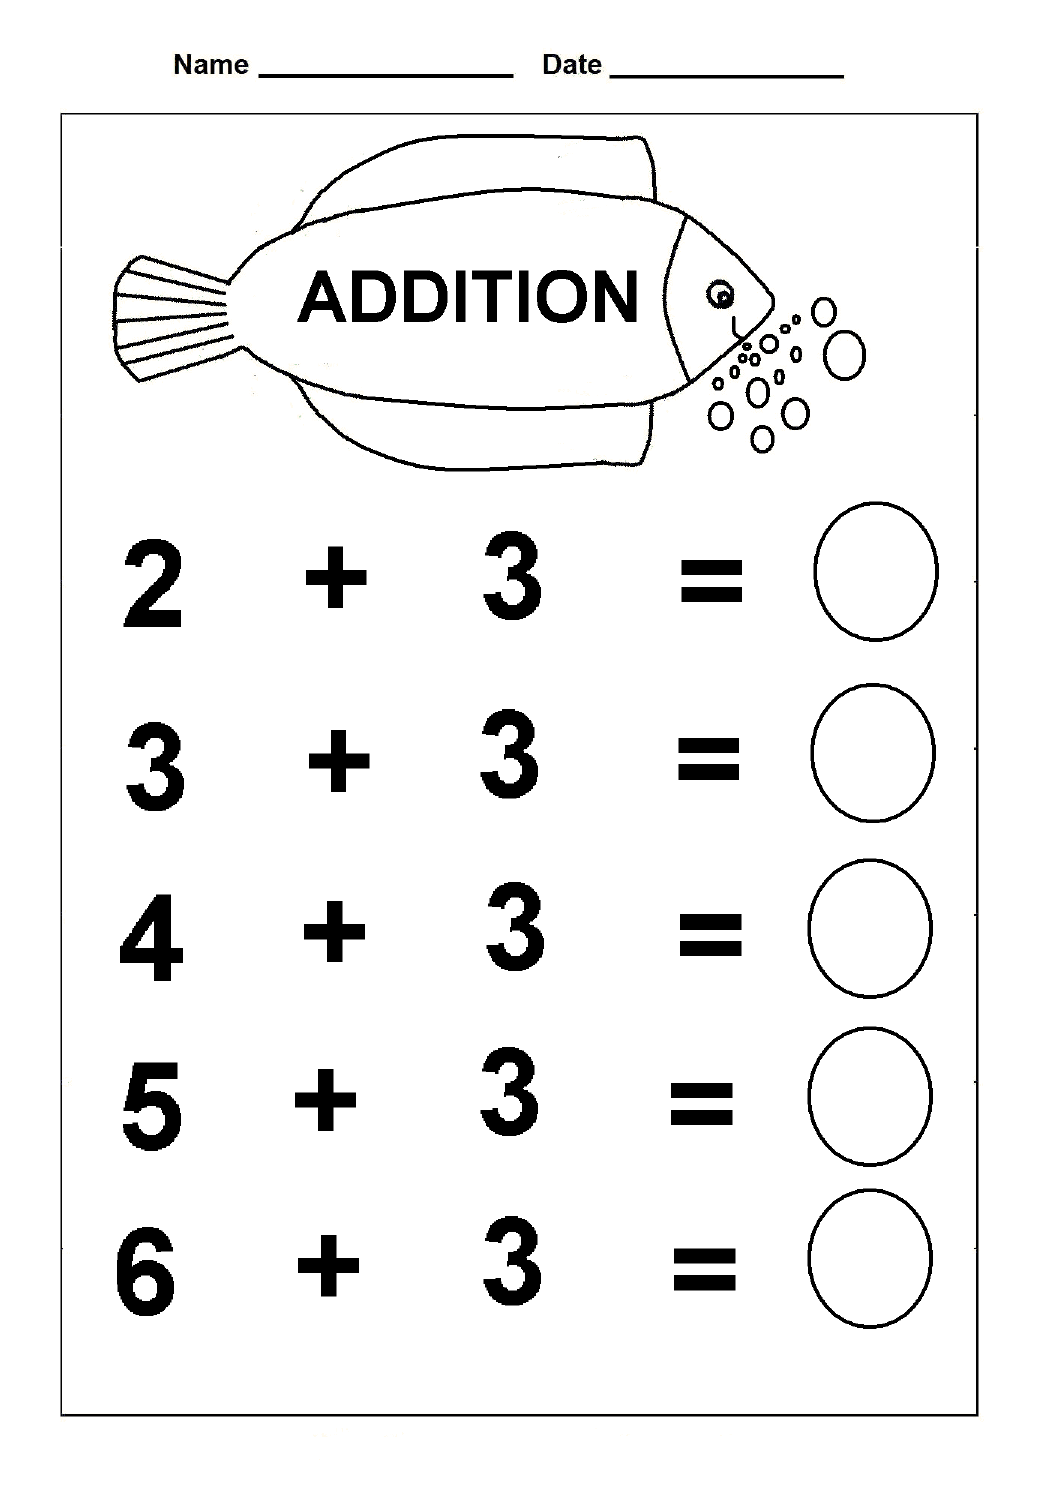 free printable kindergarten math worksheets. Black Bedroom Furniture Sets. Home Design Ideas